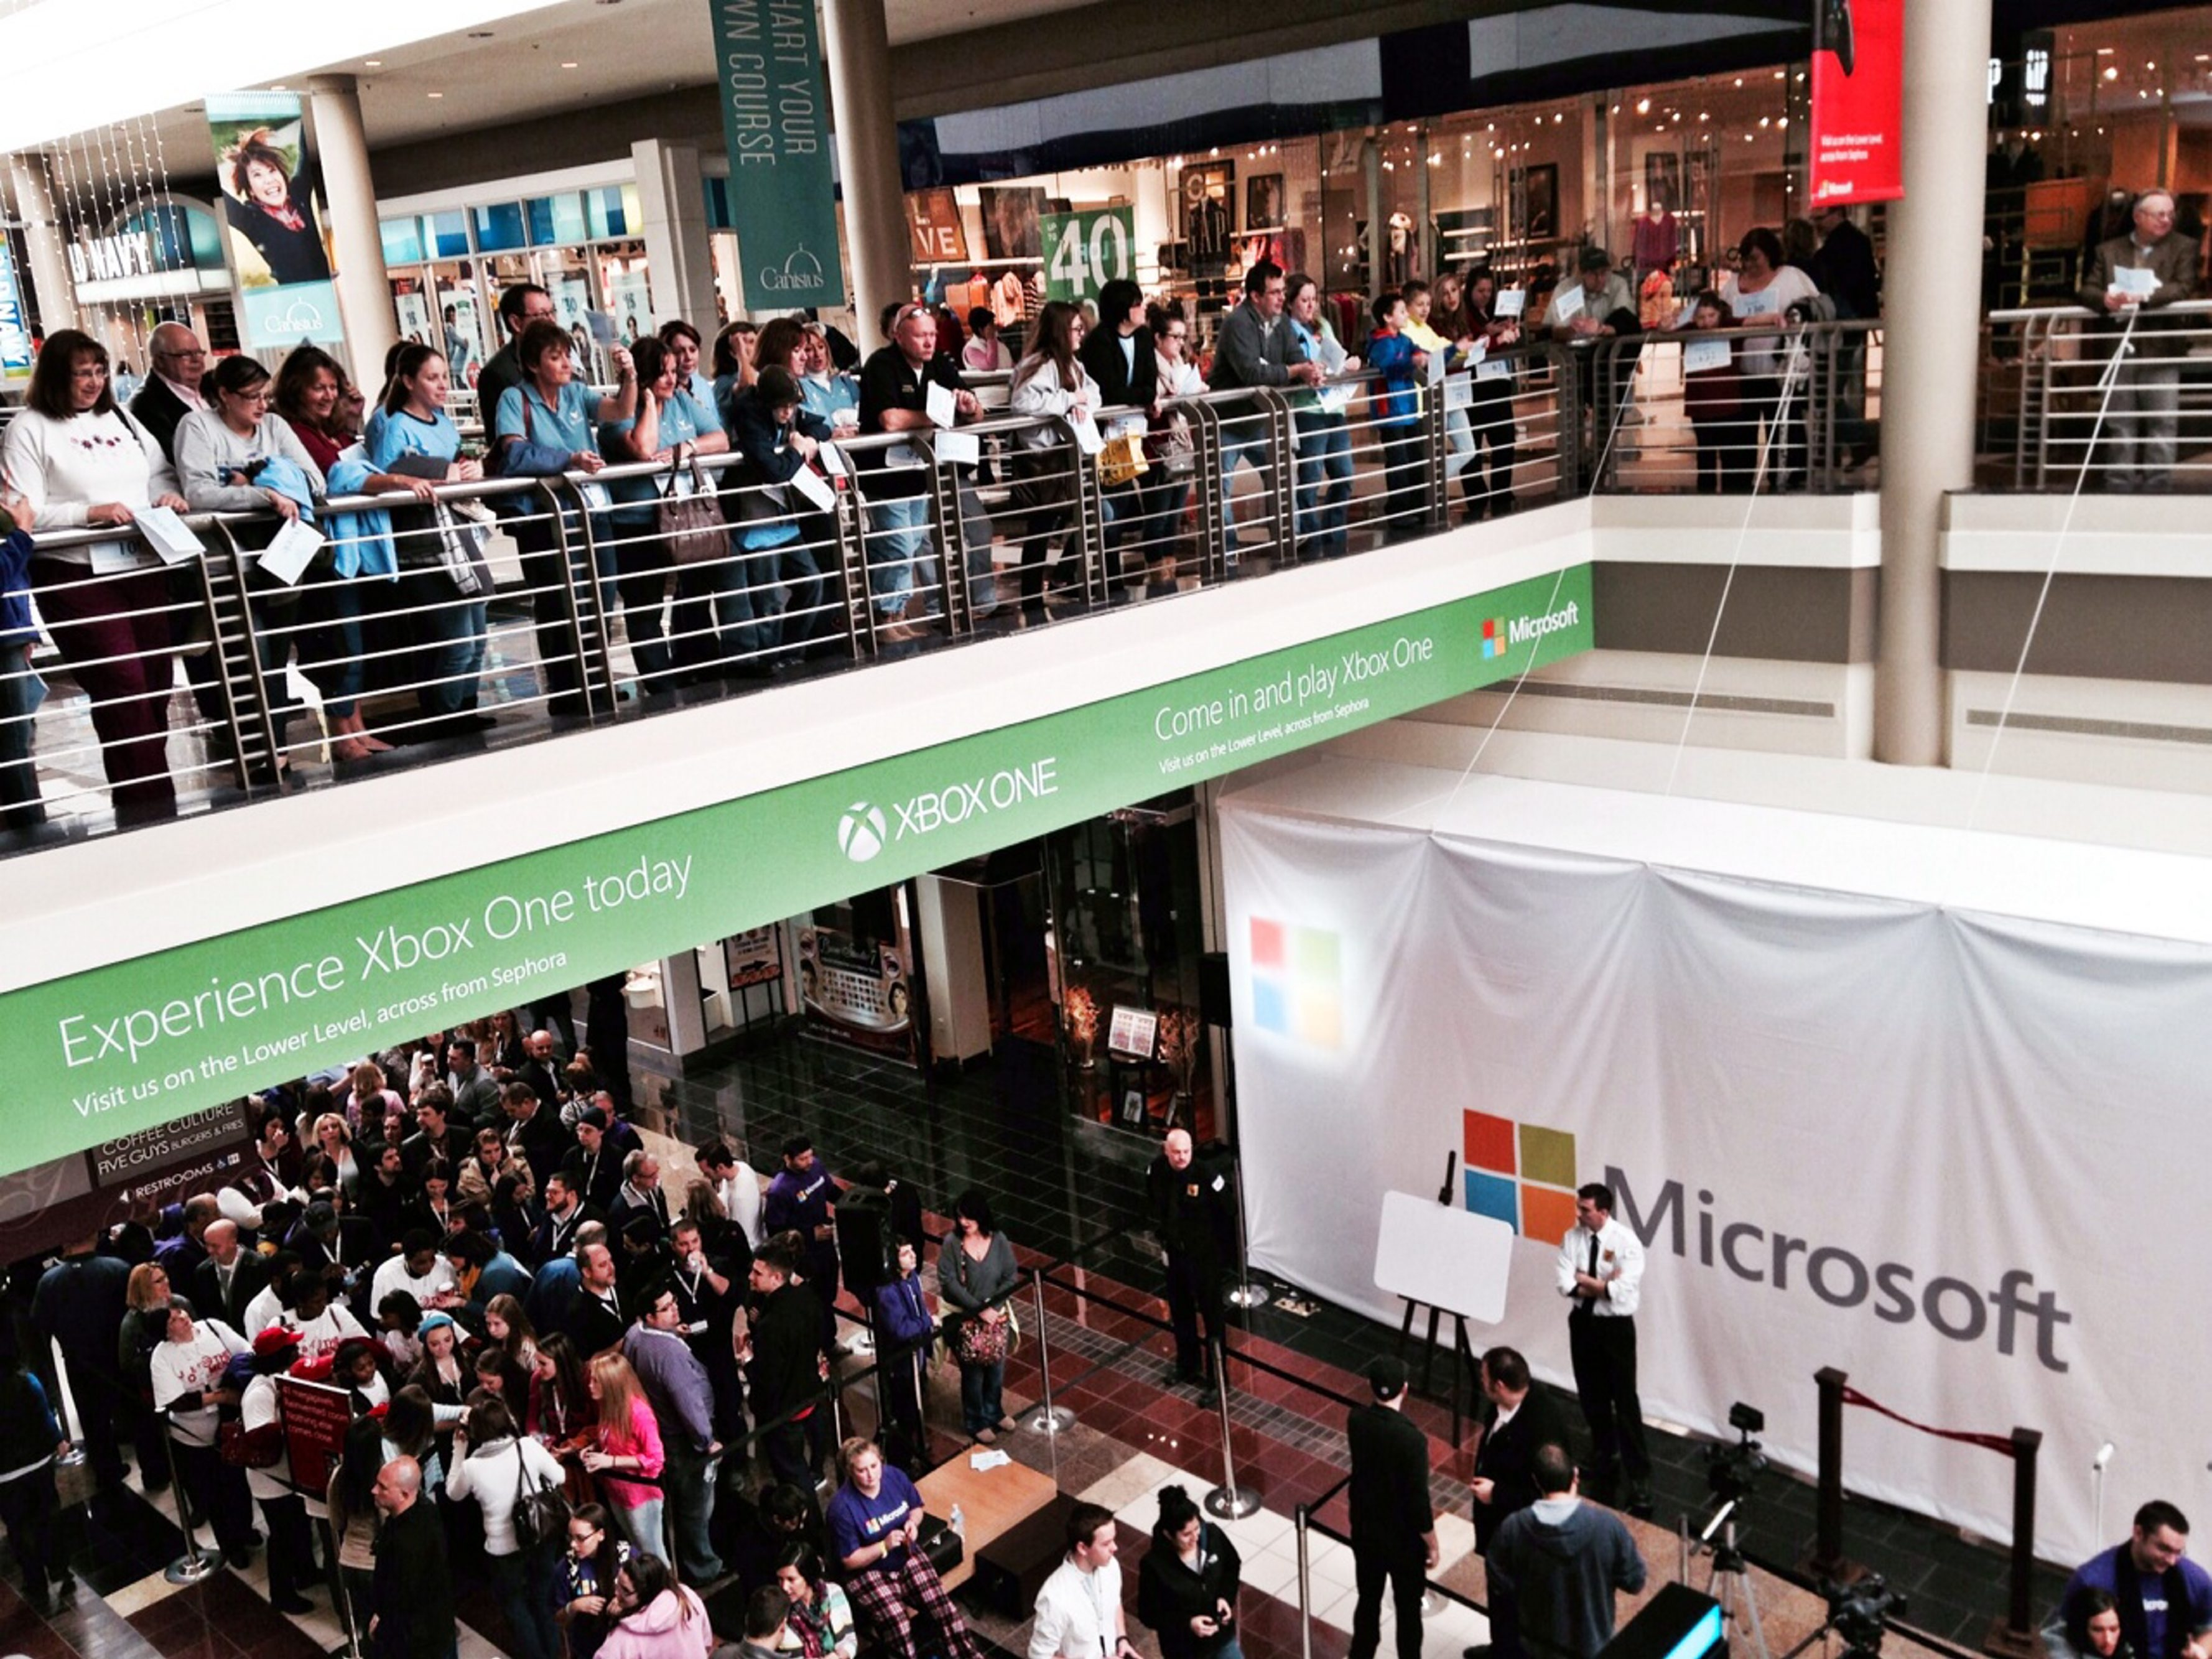 Crowds lined up at the Walden Galleria on Saturday morning for the opening of the Microsoft store.